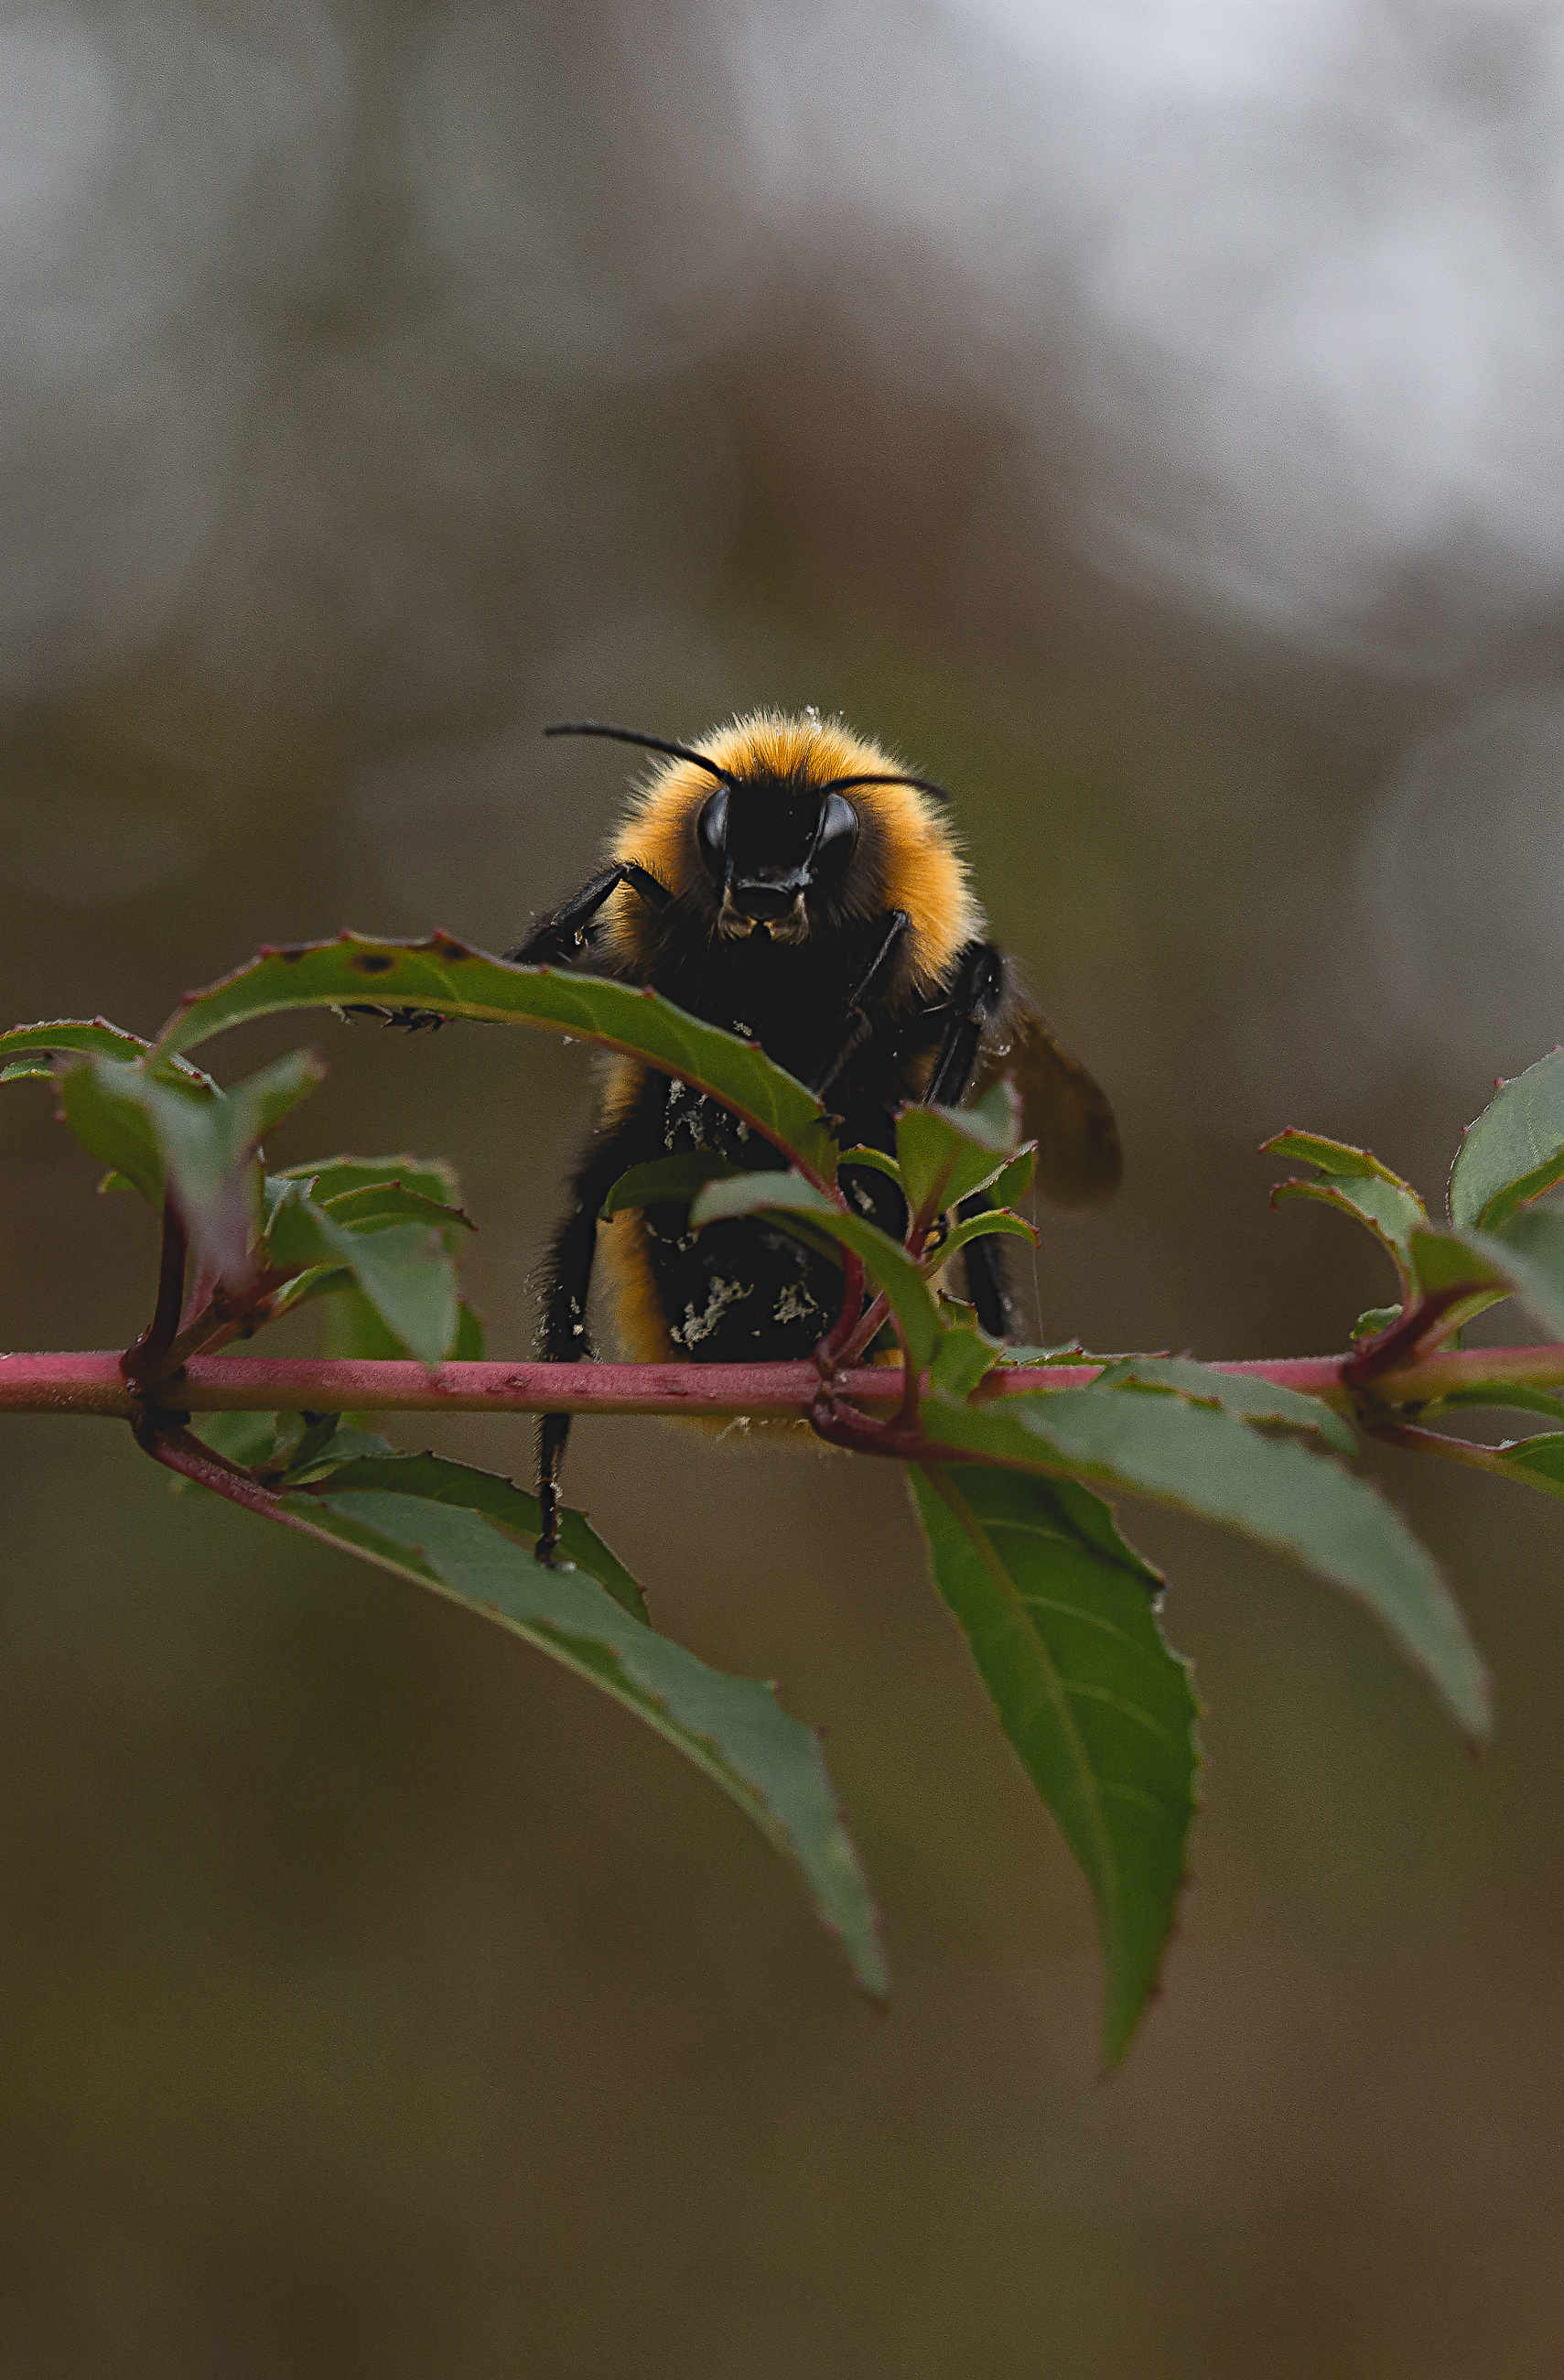 A humble bumblebee goes pauses on its route.